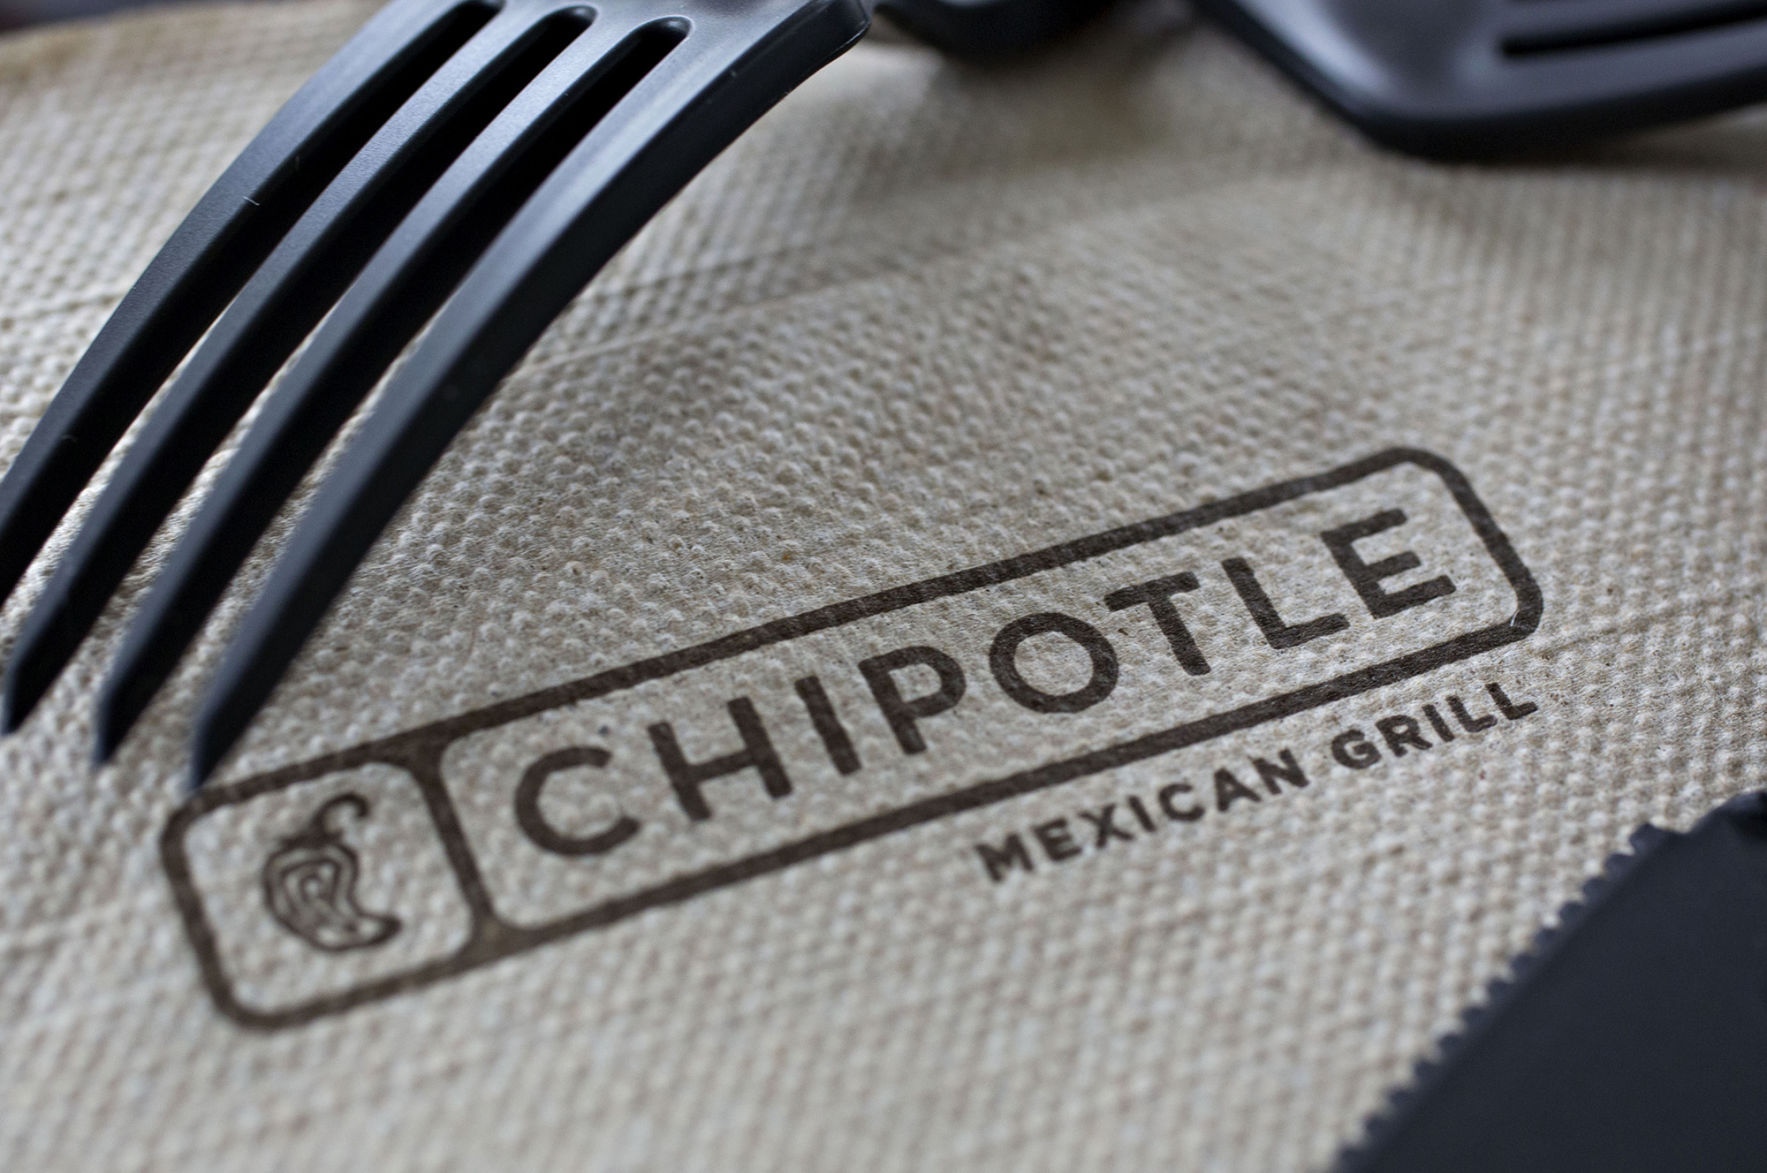 Chipotle Mexican Grill, Inc. (CMG) Downgraded by Wedbush to Market Perform